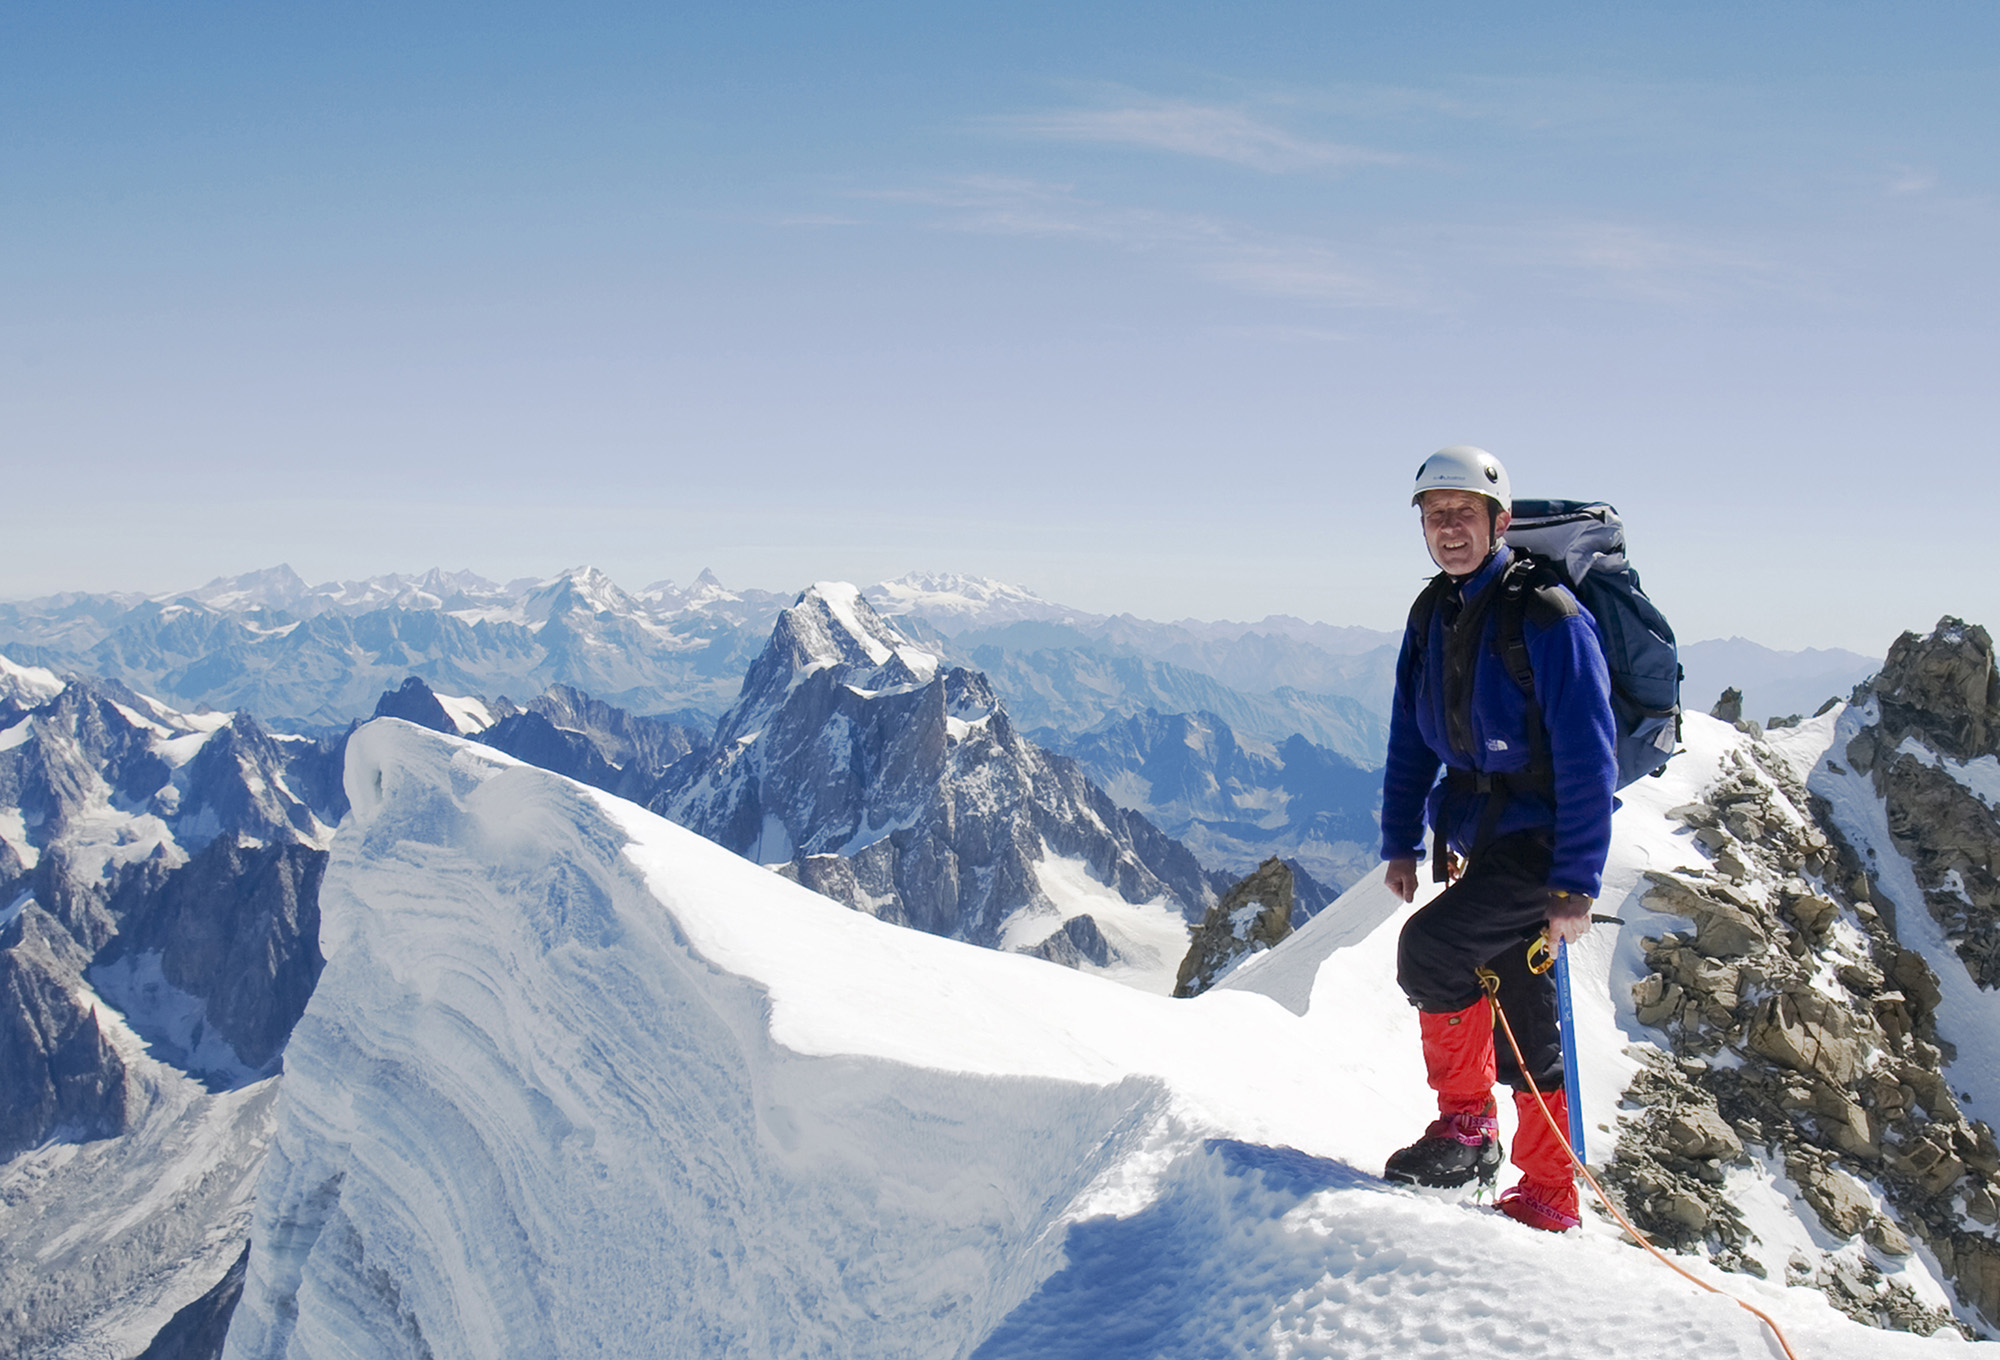 The author on the summit of the 4248-metre peak of Mont Blanc Du Tacul above Chamonix, France.